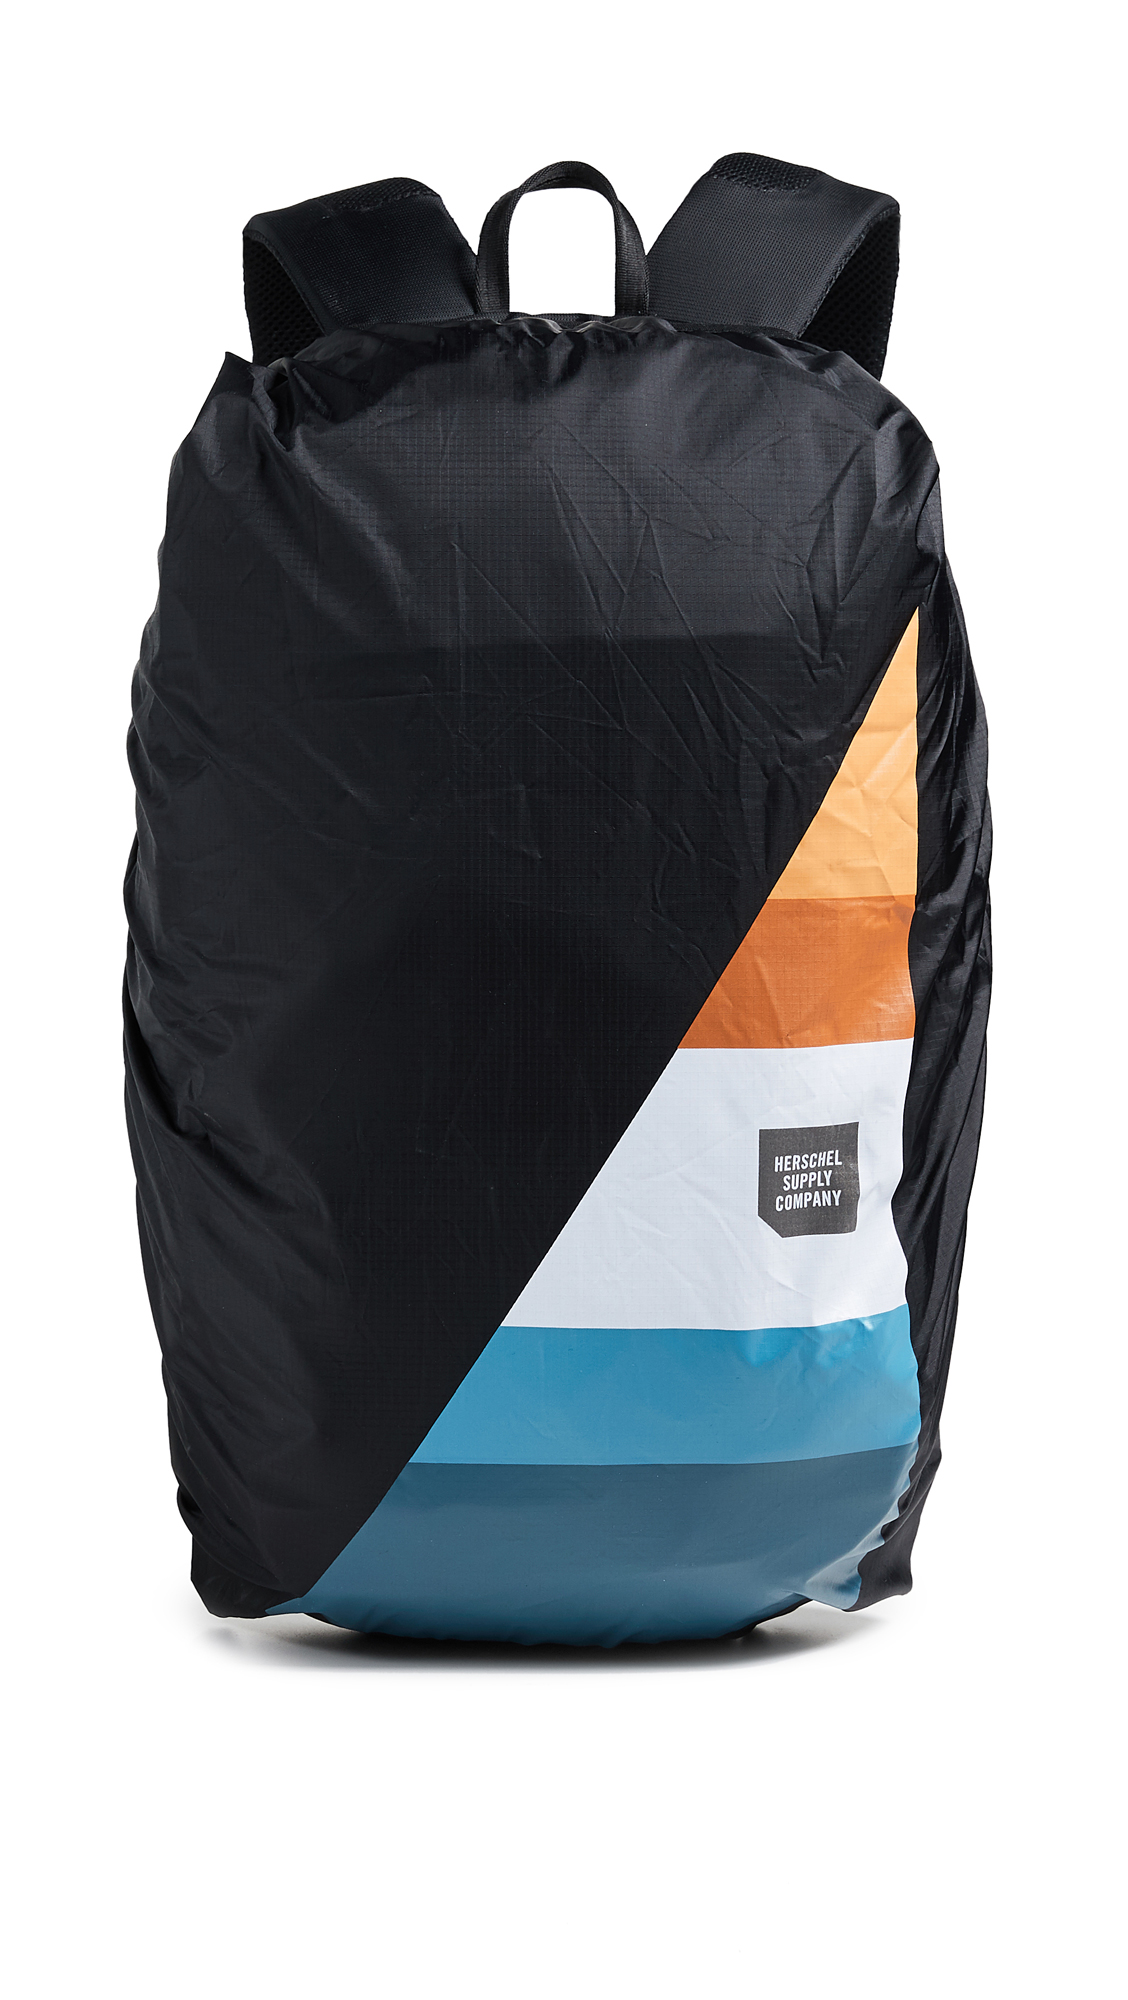 f9ffd2a2d3f Herschel Supply Co. Trail Mammoth Large Backpack